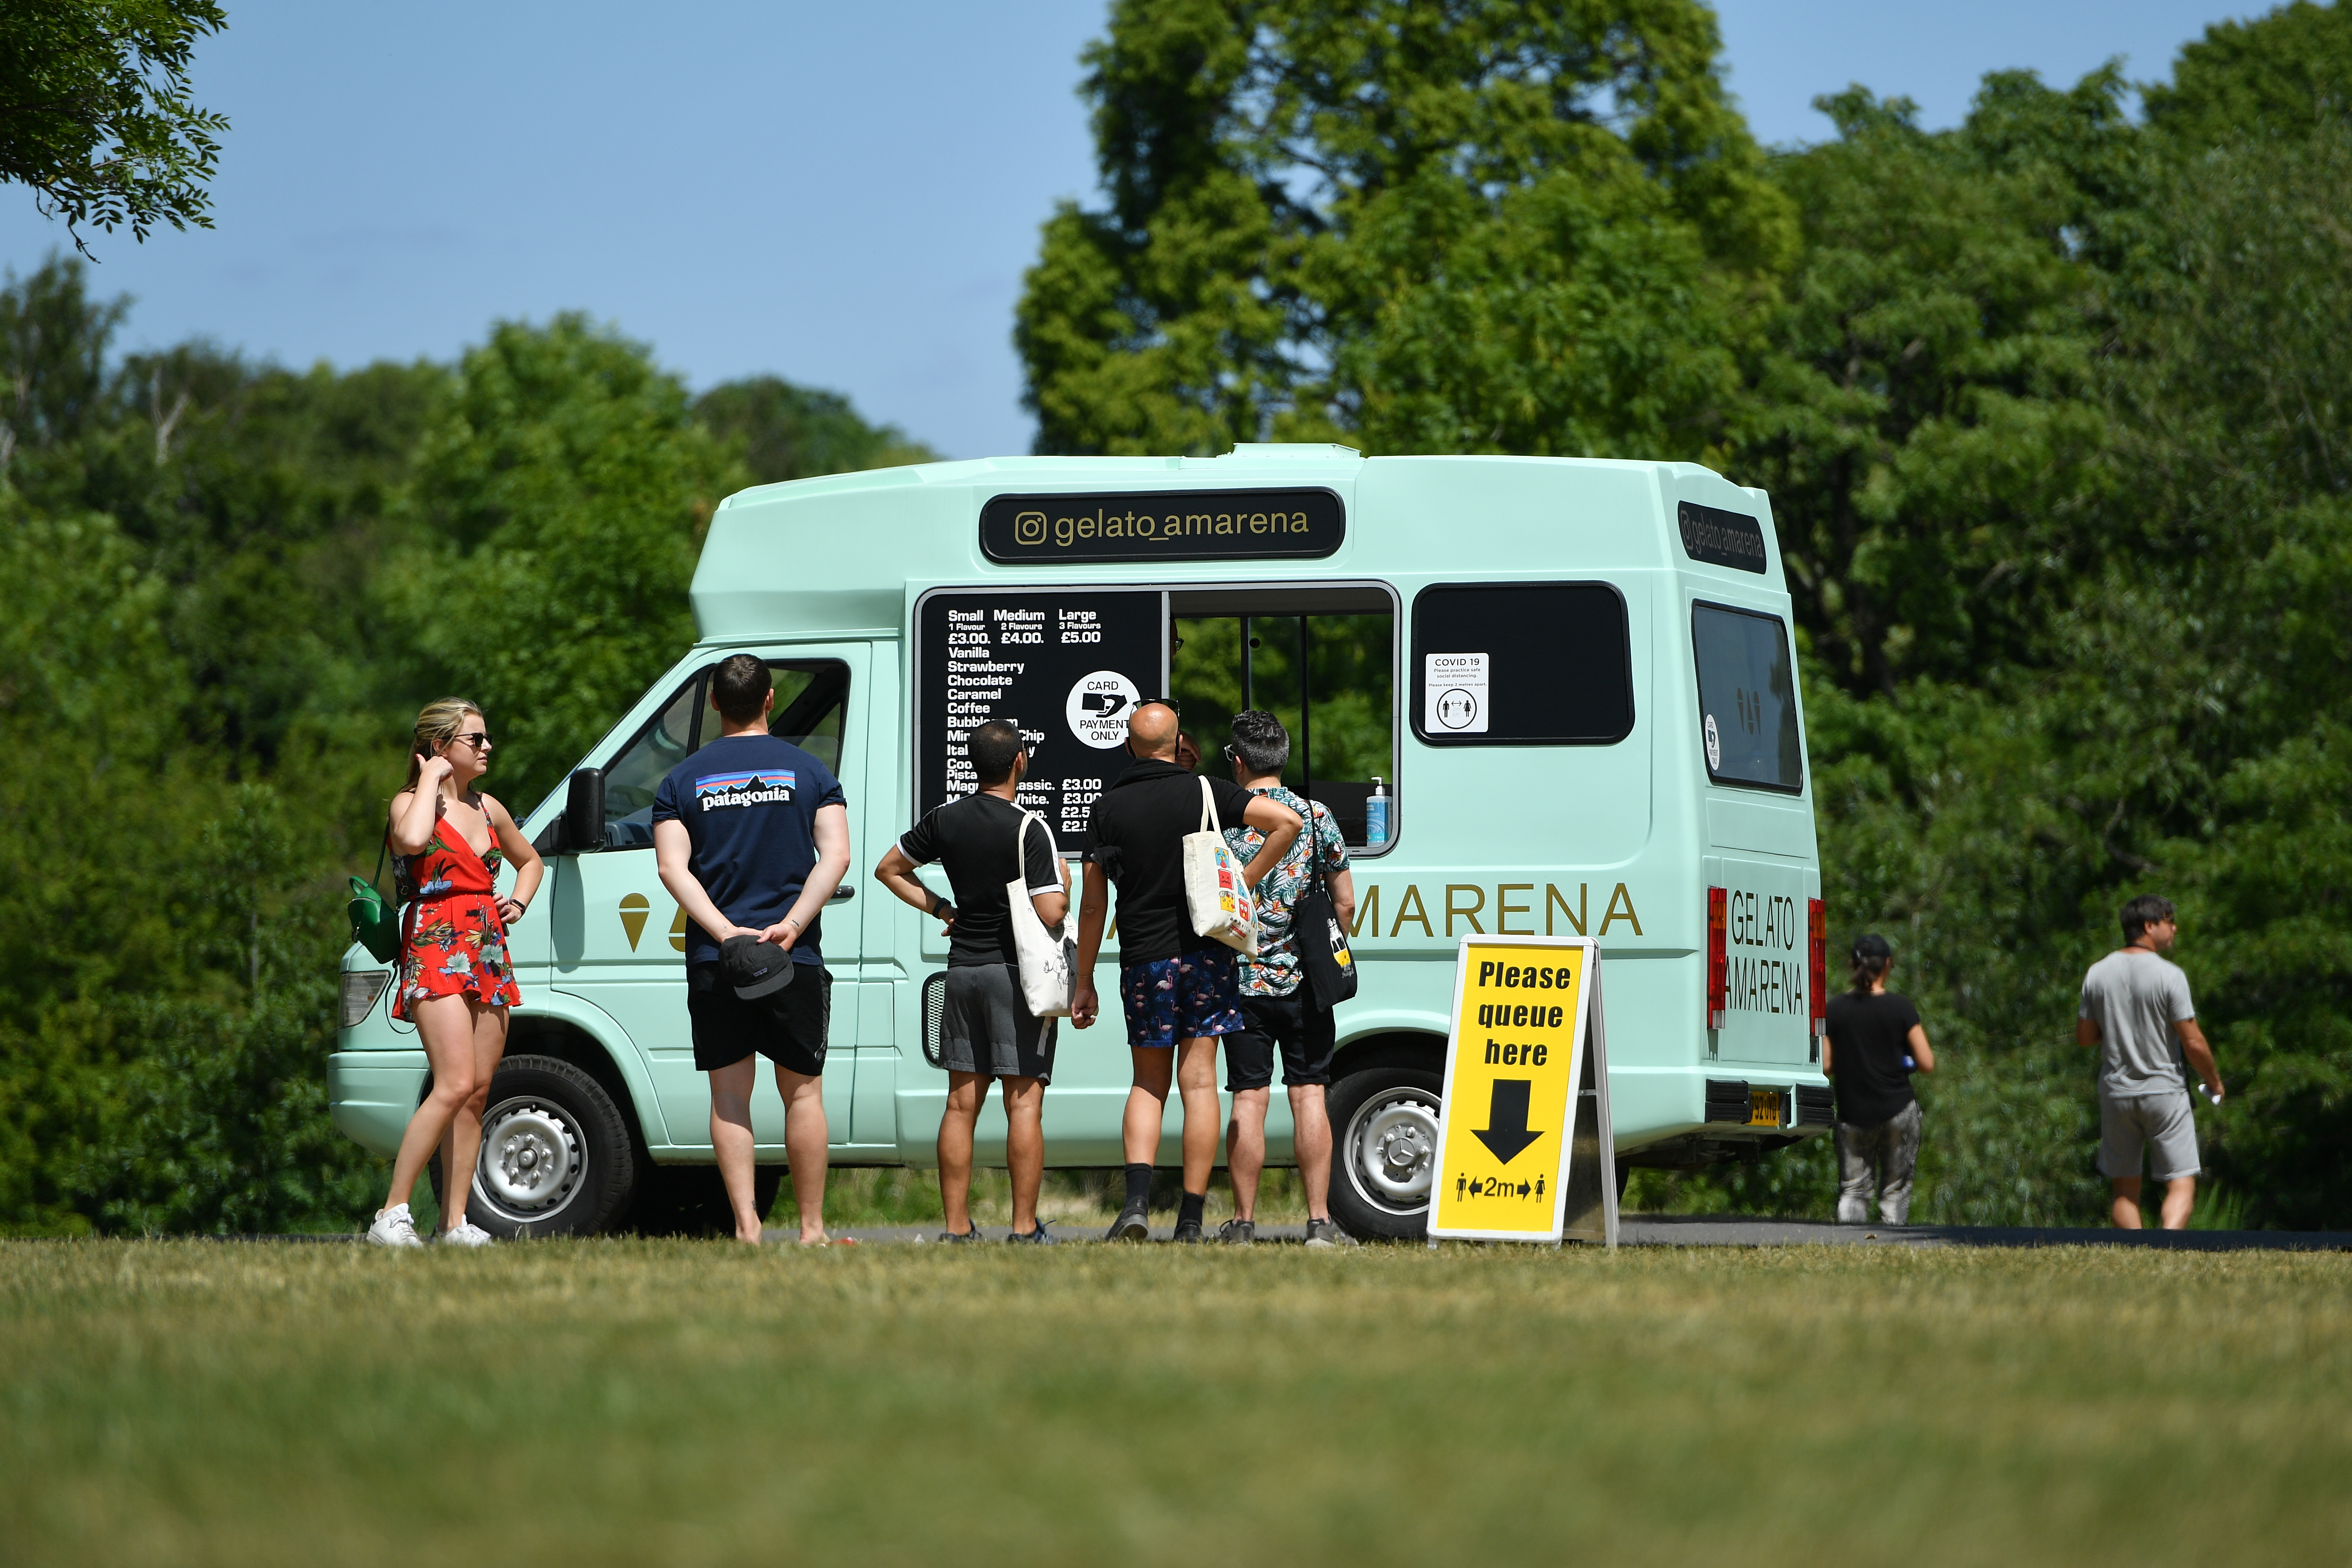 The public enjoying the Bank Holiday sun on Wandsworth Common as the UK eases some restrictions in it's tenth week to help curb the spread of the coronavirus.